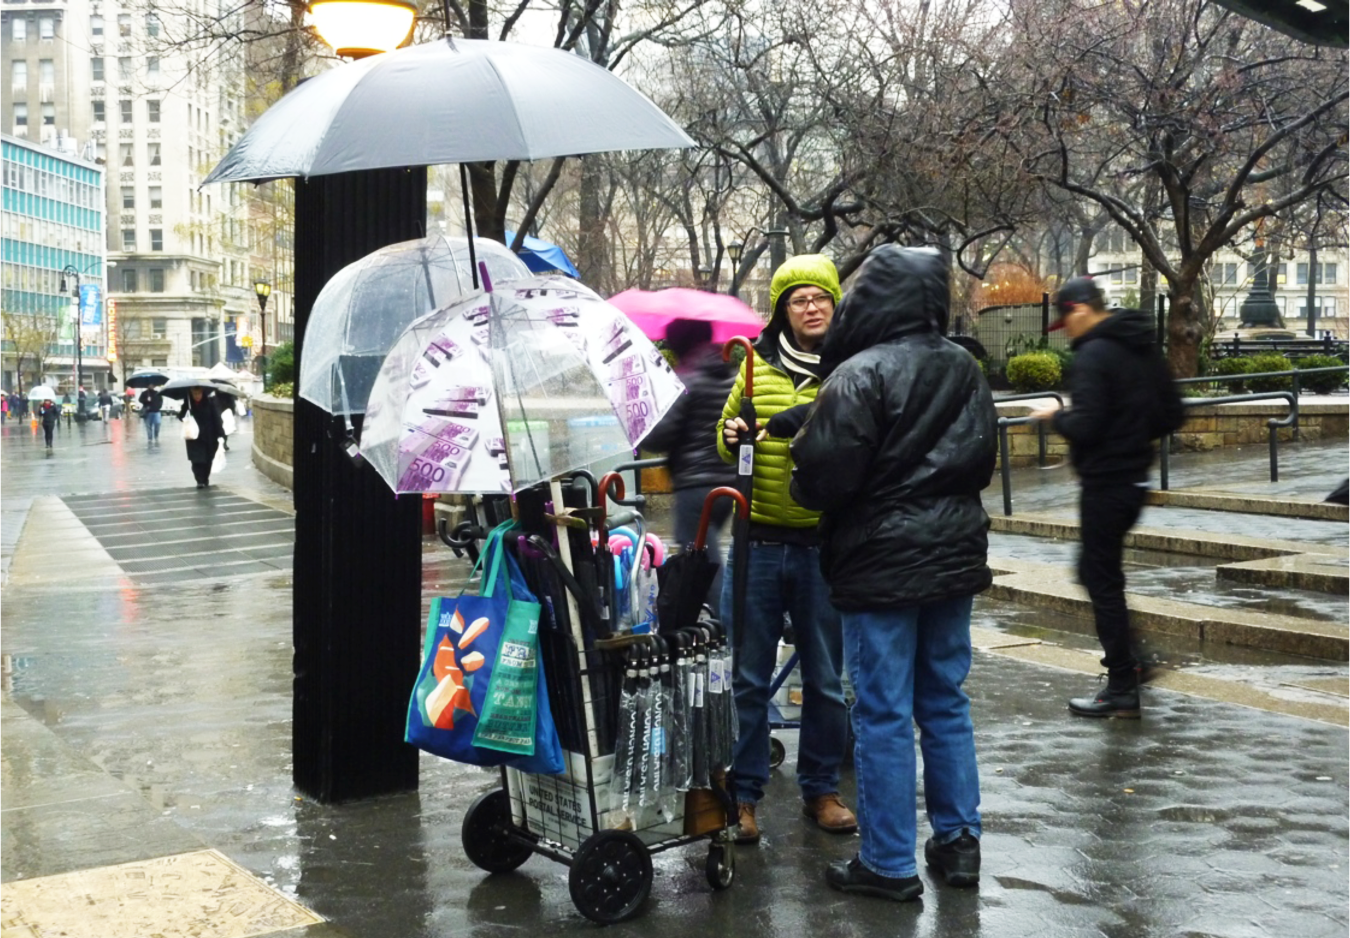 Team member interviewing a licensed veteran vendor selling umbrellas at Union Square Plaza on a rainy winter afternoon. Source: Aseem Inam